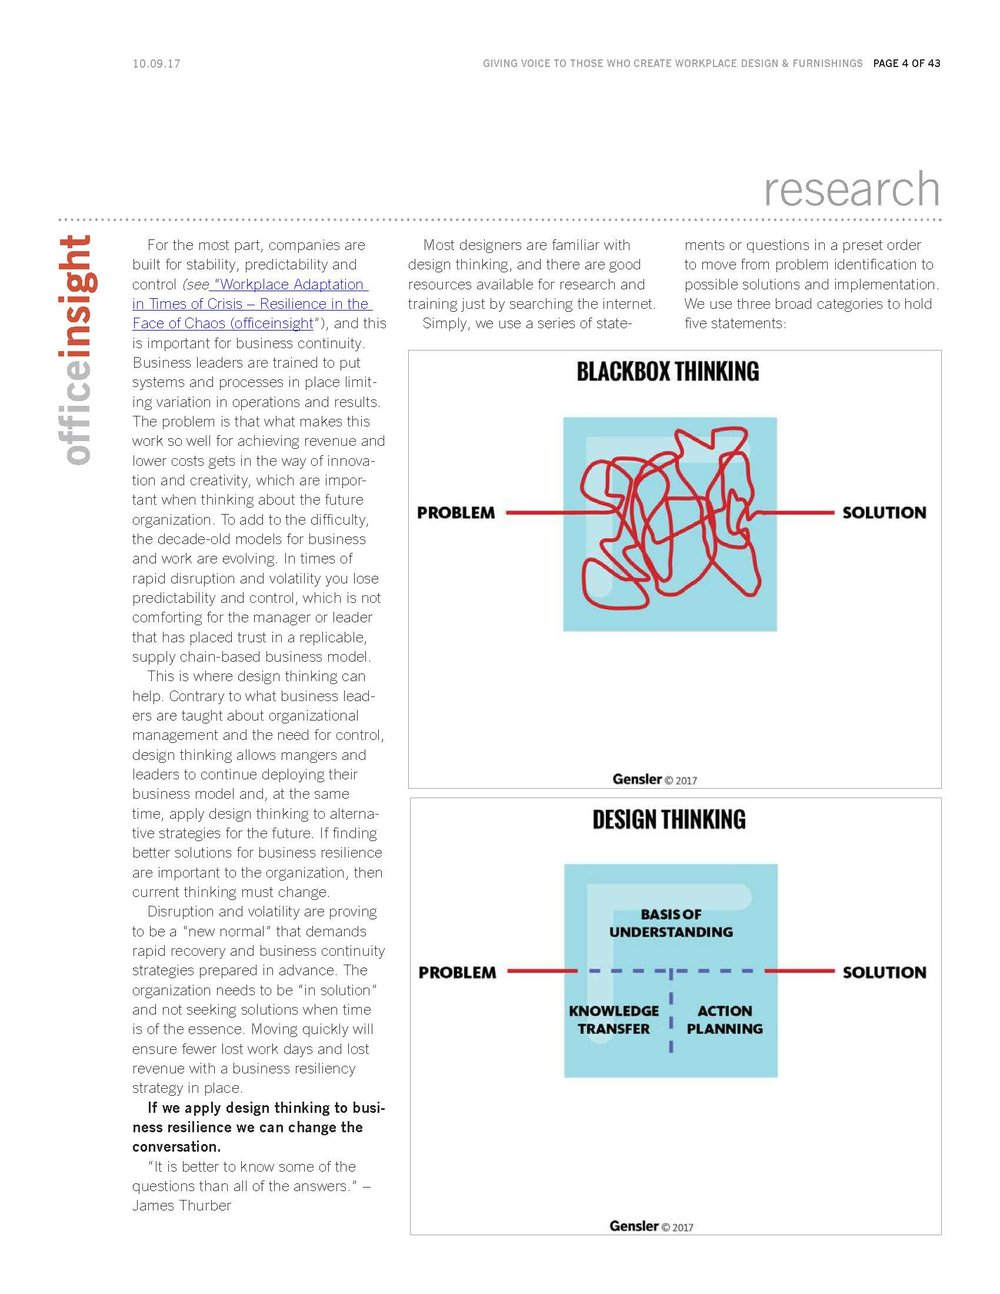 Business Resilience - Design Thinking - Disruptions - Office Insight 10_09_2017 LR_Page_3.jpg